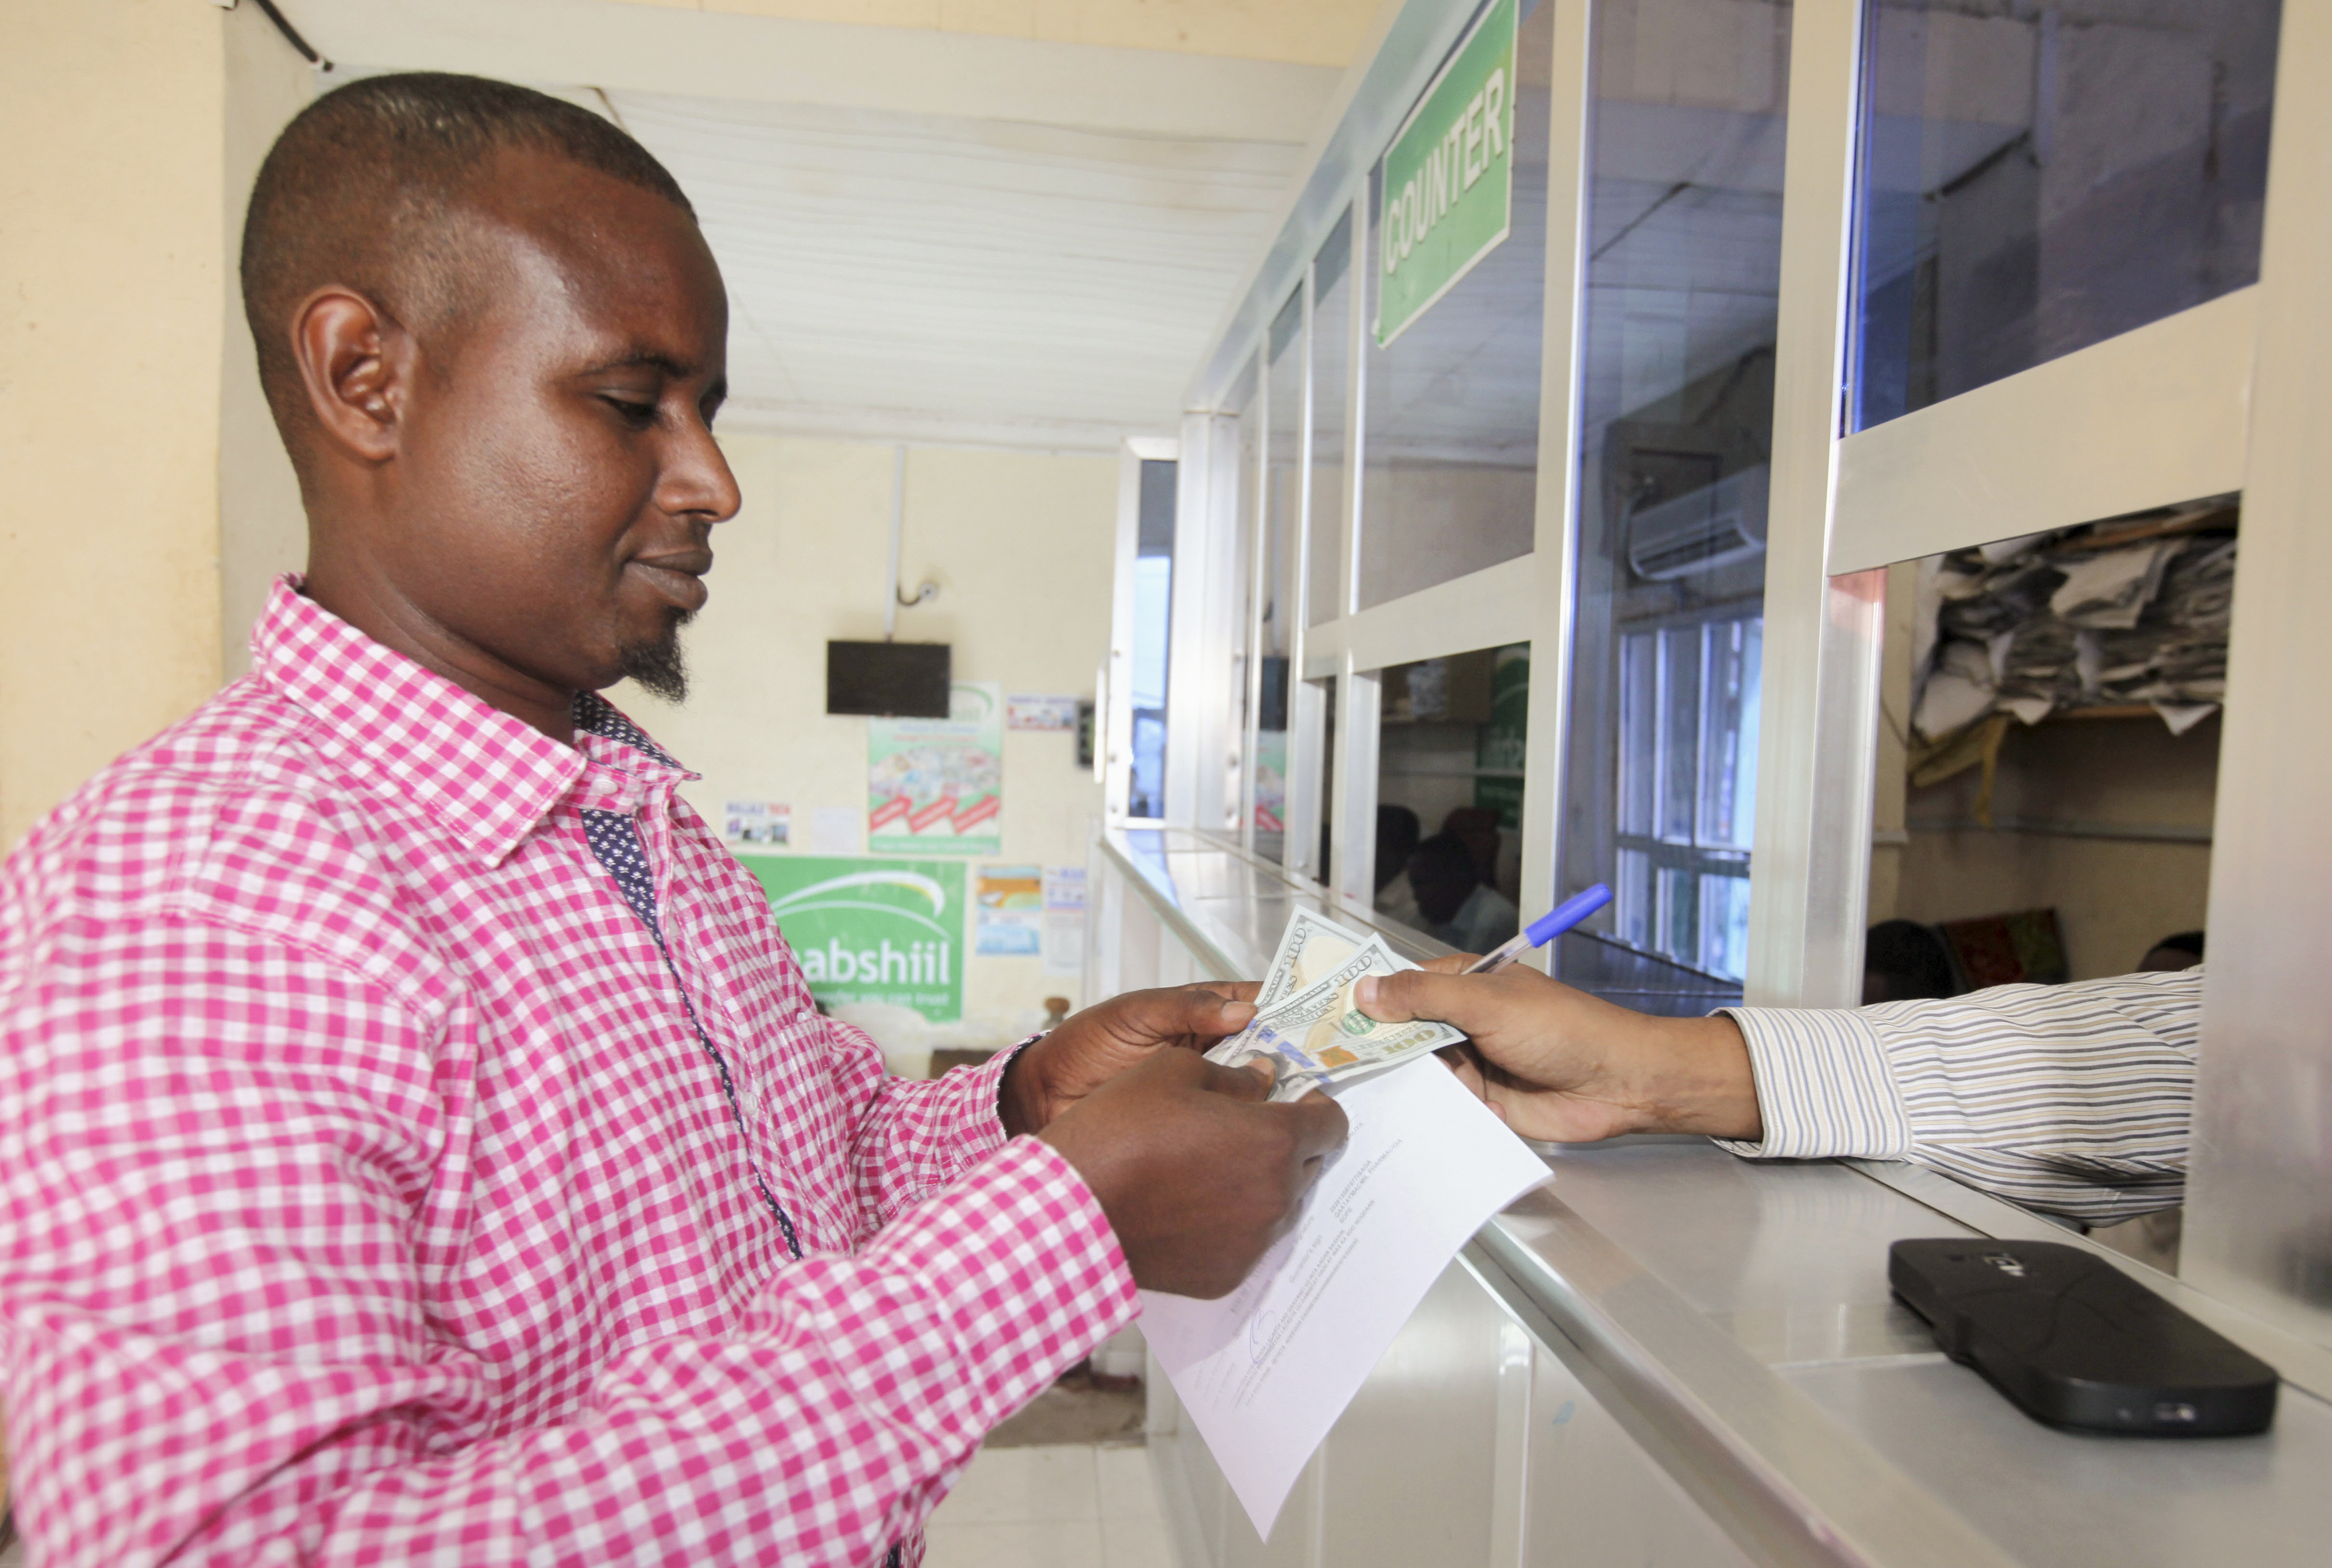 A customer receives U.S. notes from a teller at the Dahabshill money transfer office in capital Mogadishu February 16, 2015. Somalia's prime minister last week urged the U.S. government and U.S. banks to support money transfer firms that offer a lifeline for many in the war-torn Horn of Africa nation. About 40 percent of all Somali families rely on remittances from another country, and the estimated annual total of $1.3 billion is more than all foreign aid and investment in Somalia combined.